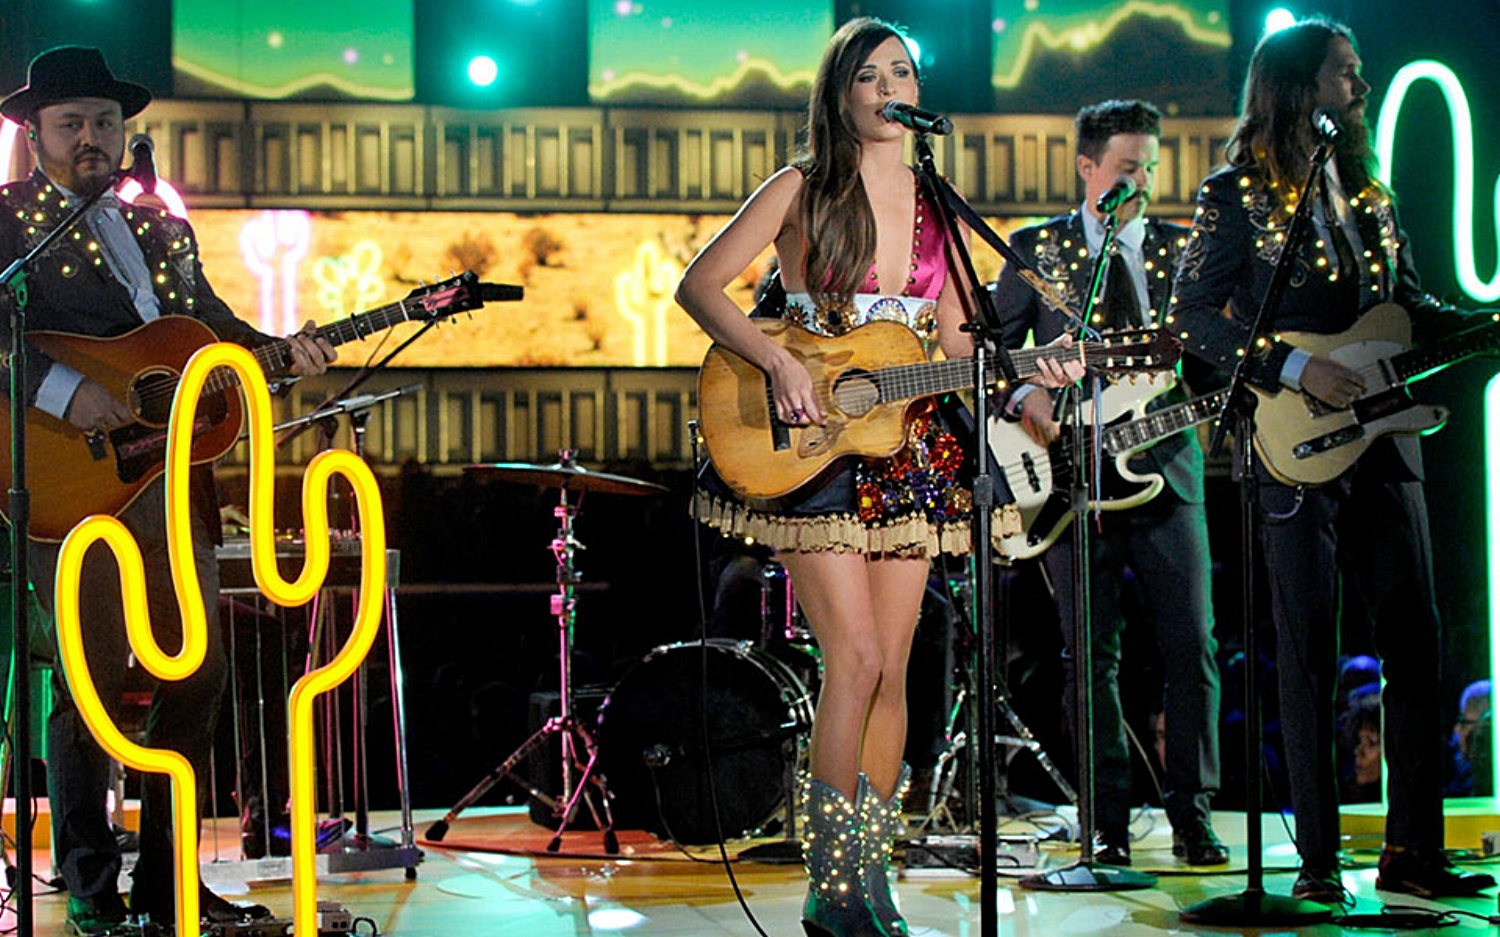 56TH GRAMMYS - KACEY MUSGRAVES